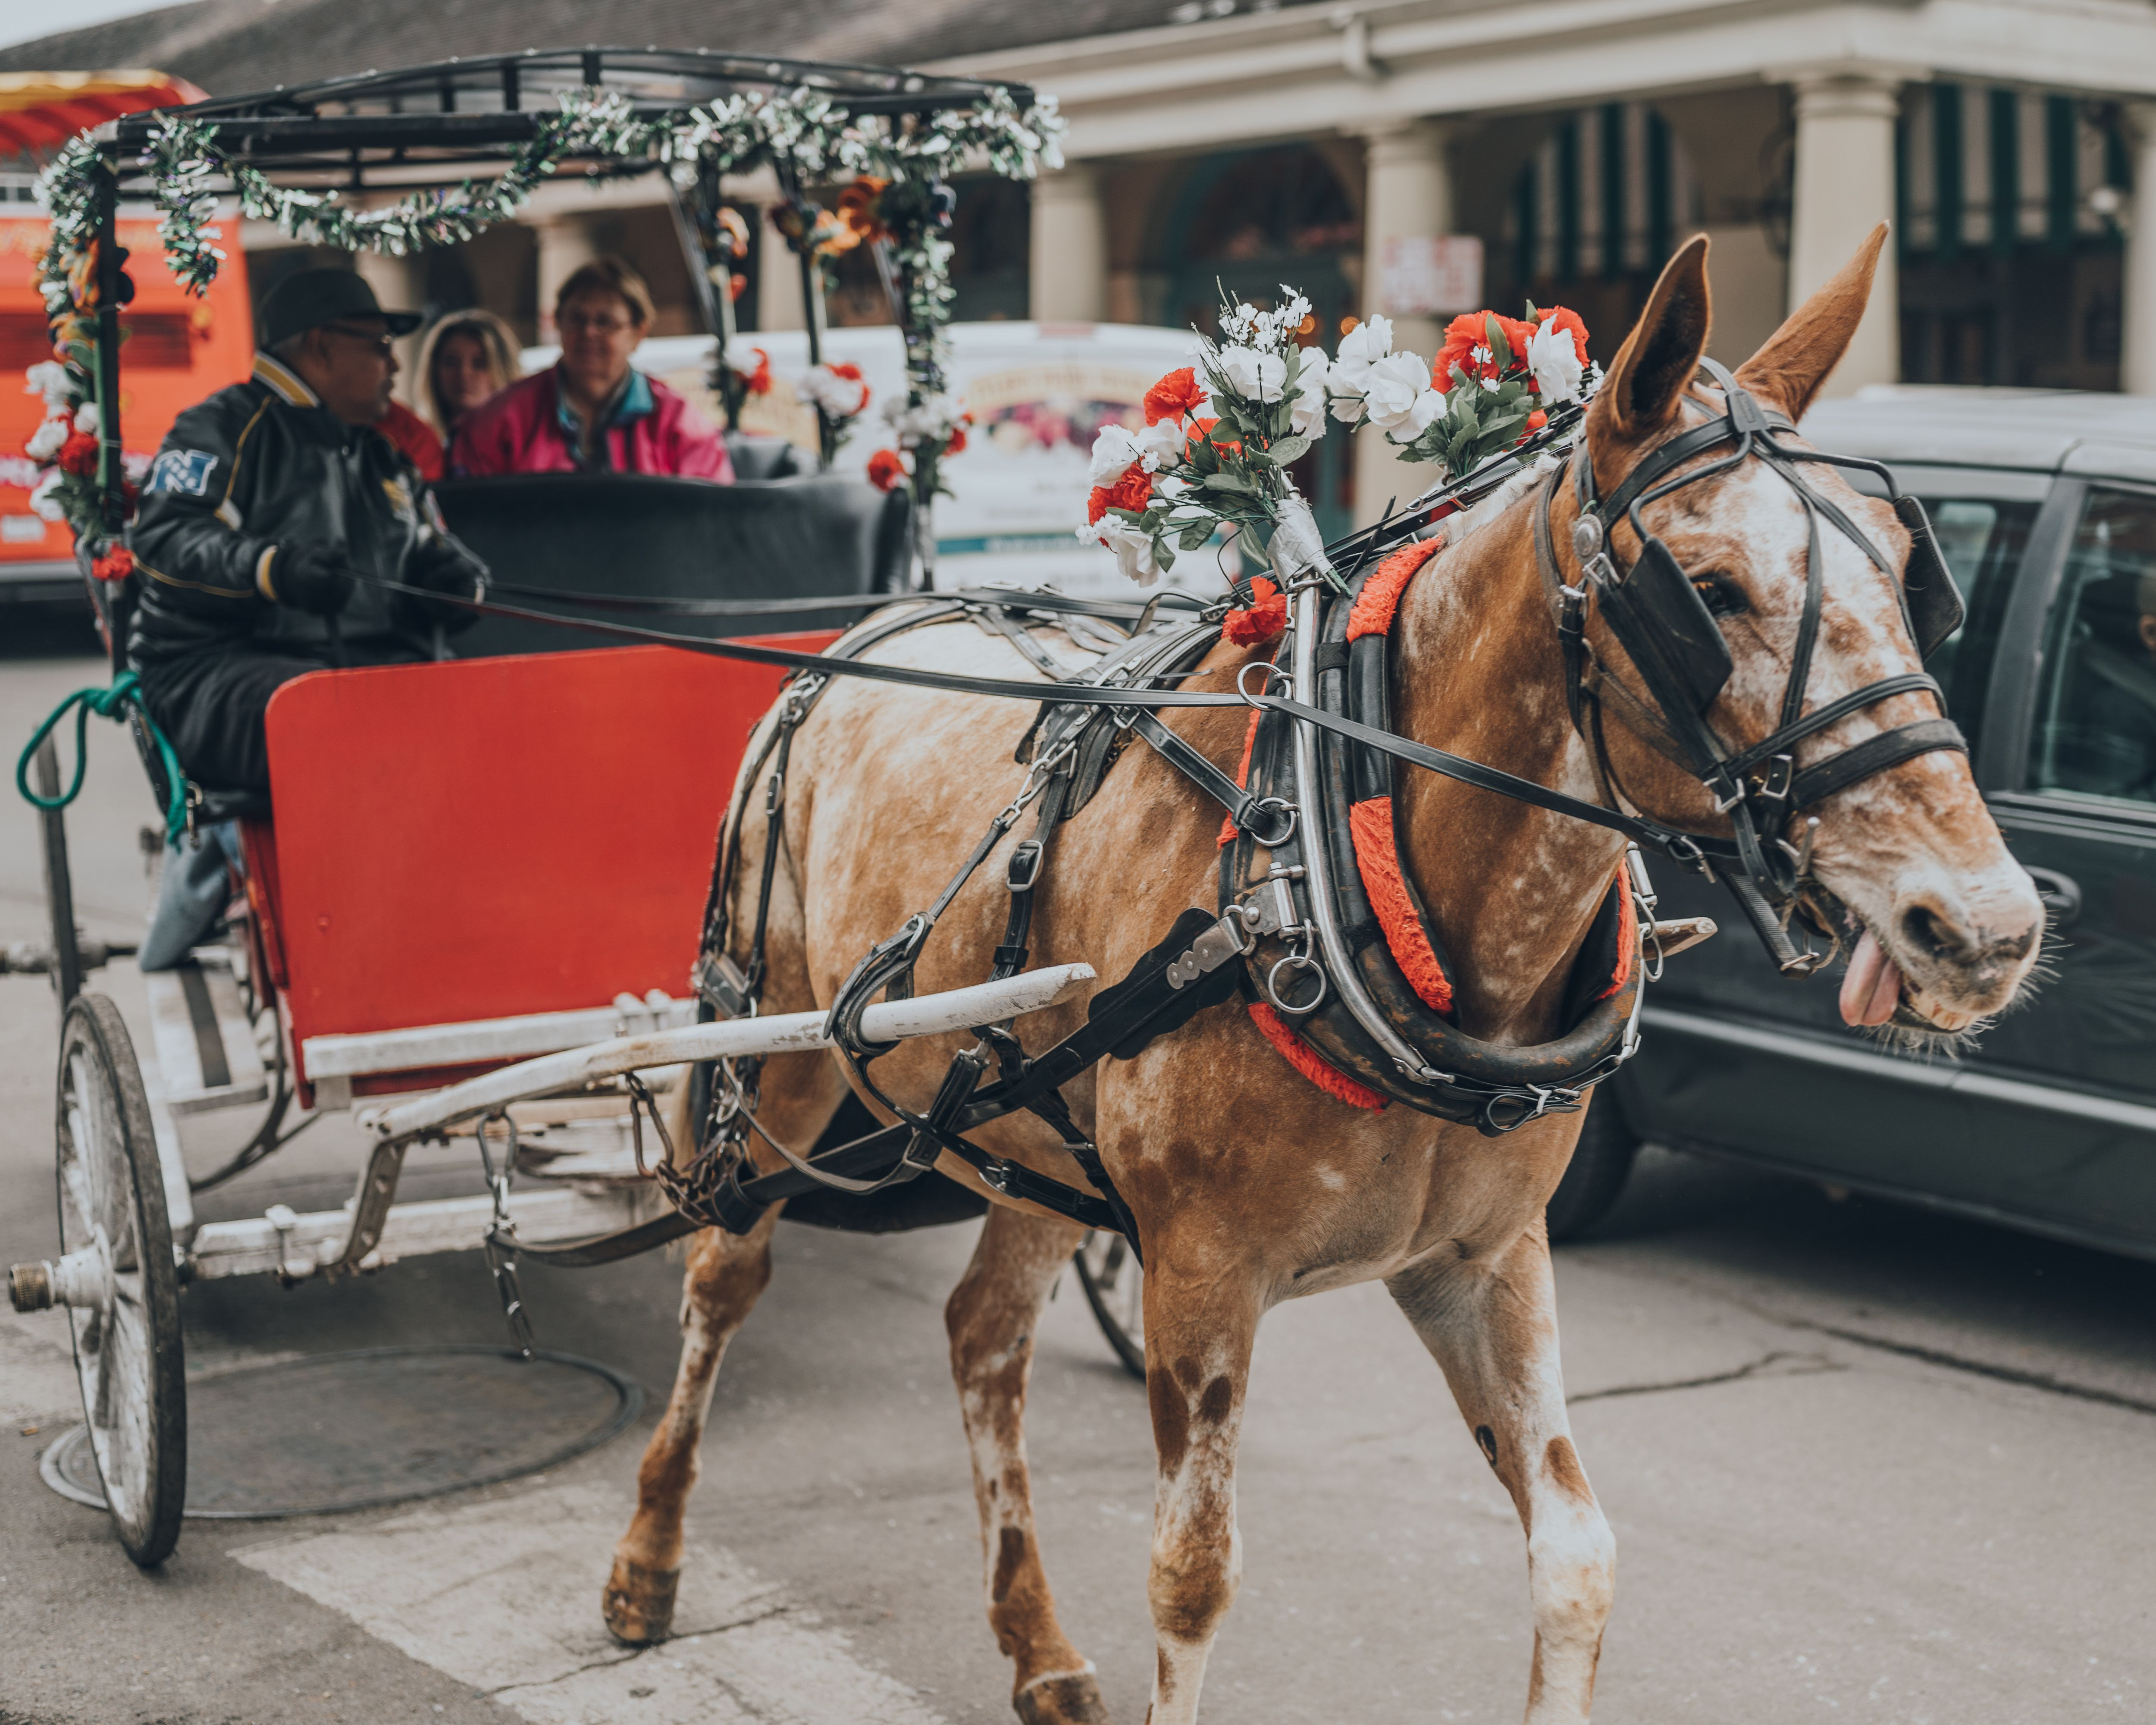 A horse drawn carriage in New Orleans